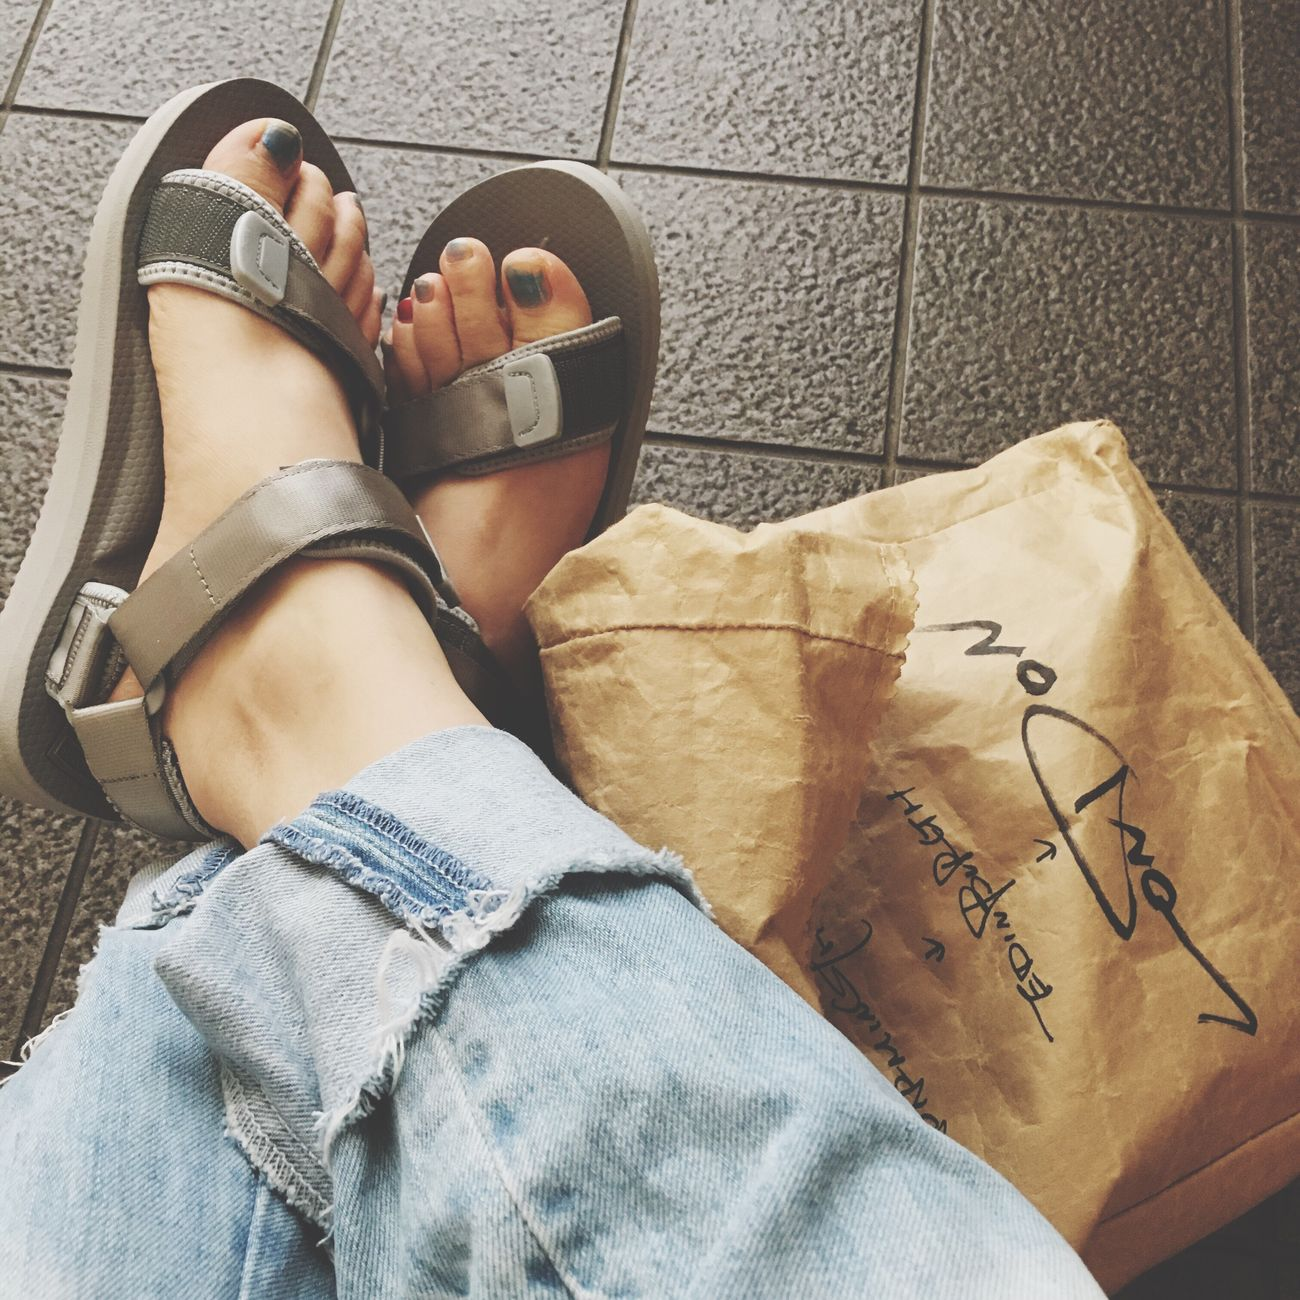 GWたのしい。 Shoes Suicoke Bag Matatabi Denim G Star Raw Happy Holiday Eat Dinner With Friend